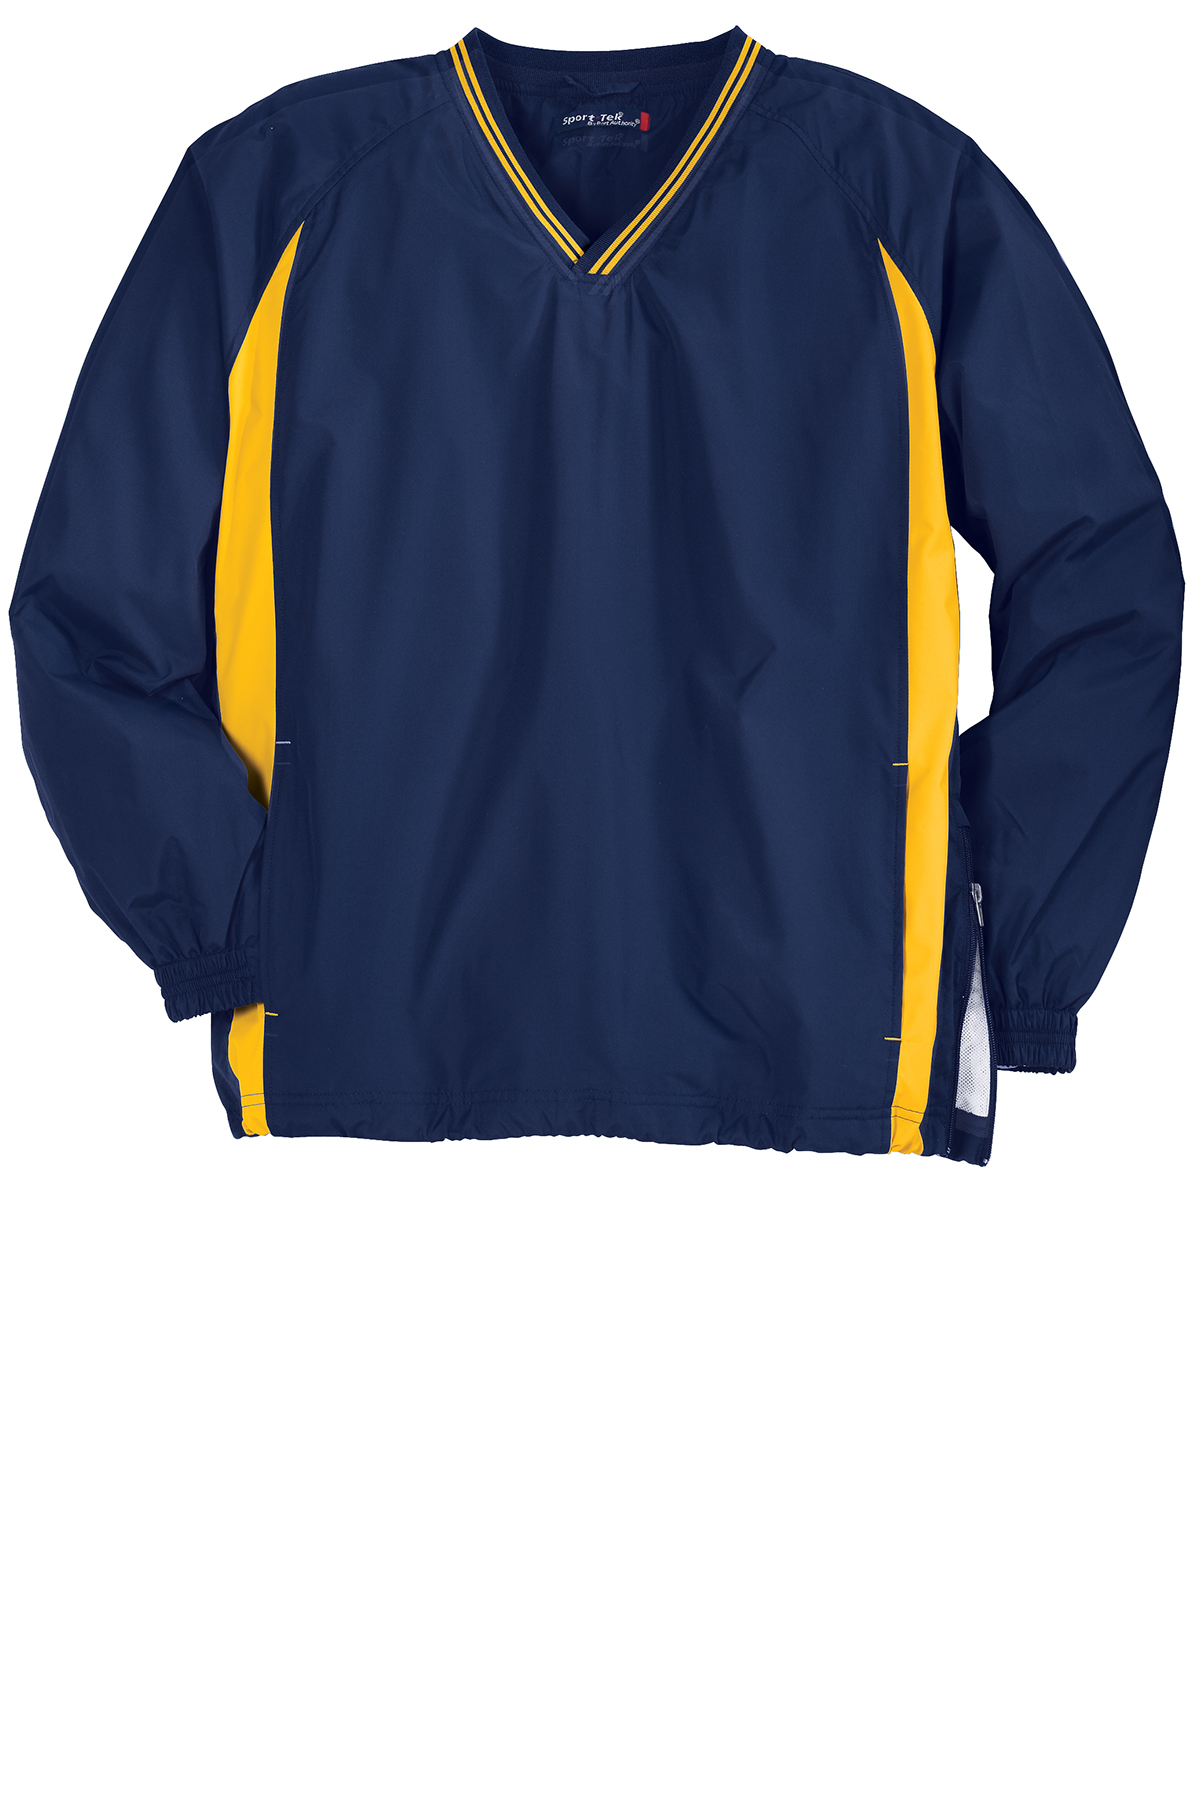 click to view True Navy/Gold